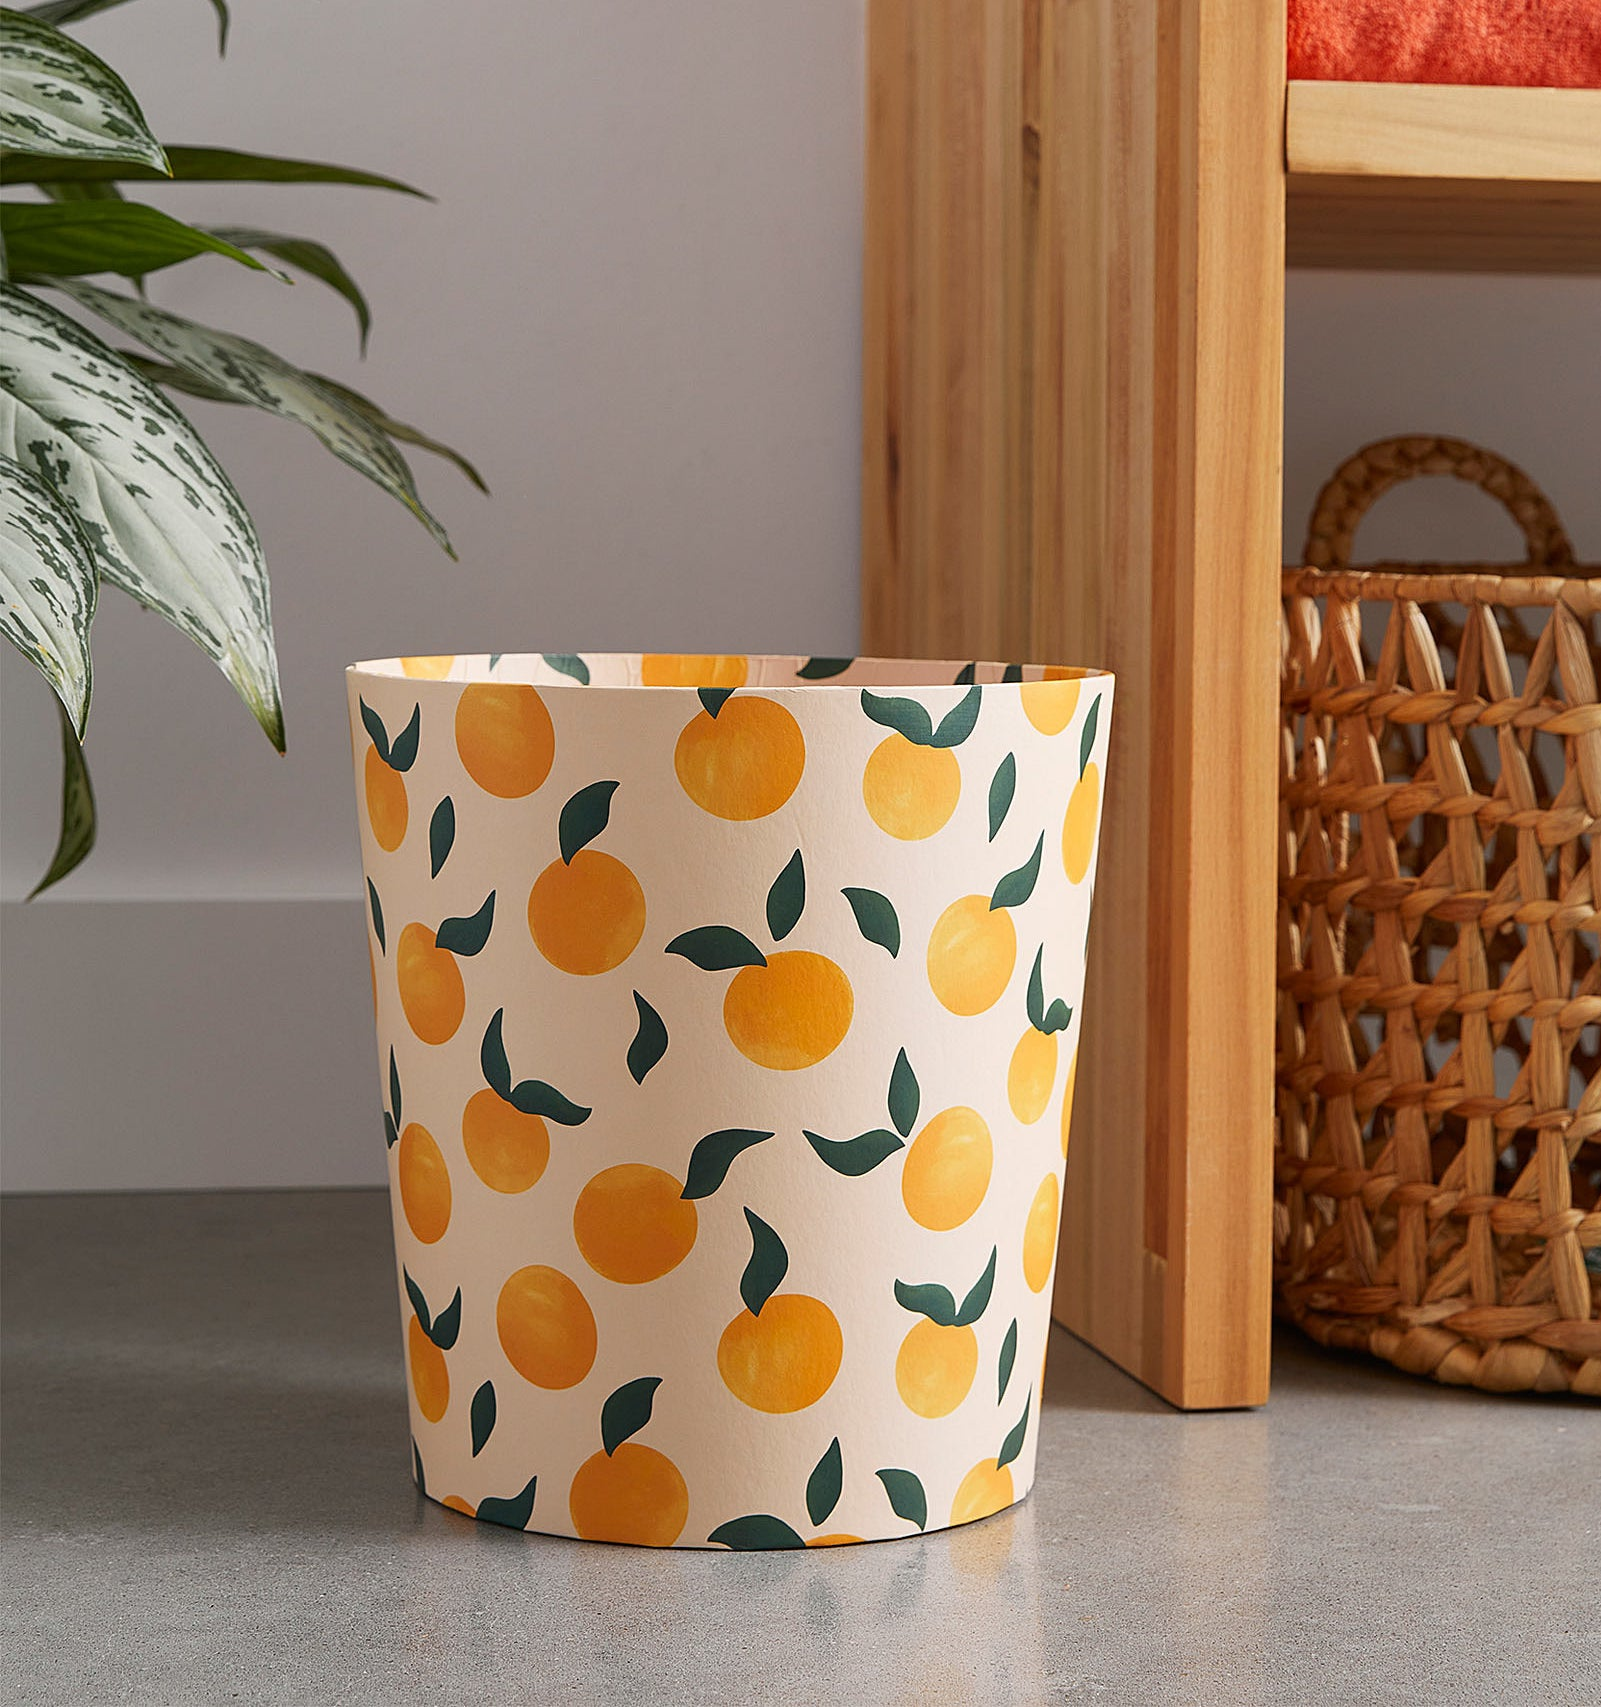 a trash can with illustrated peaches all over it